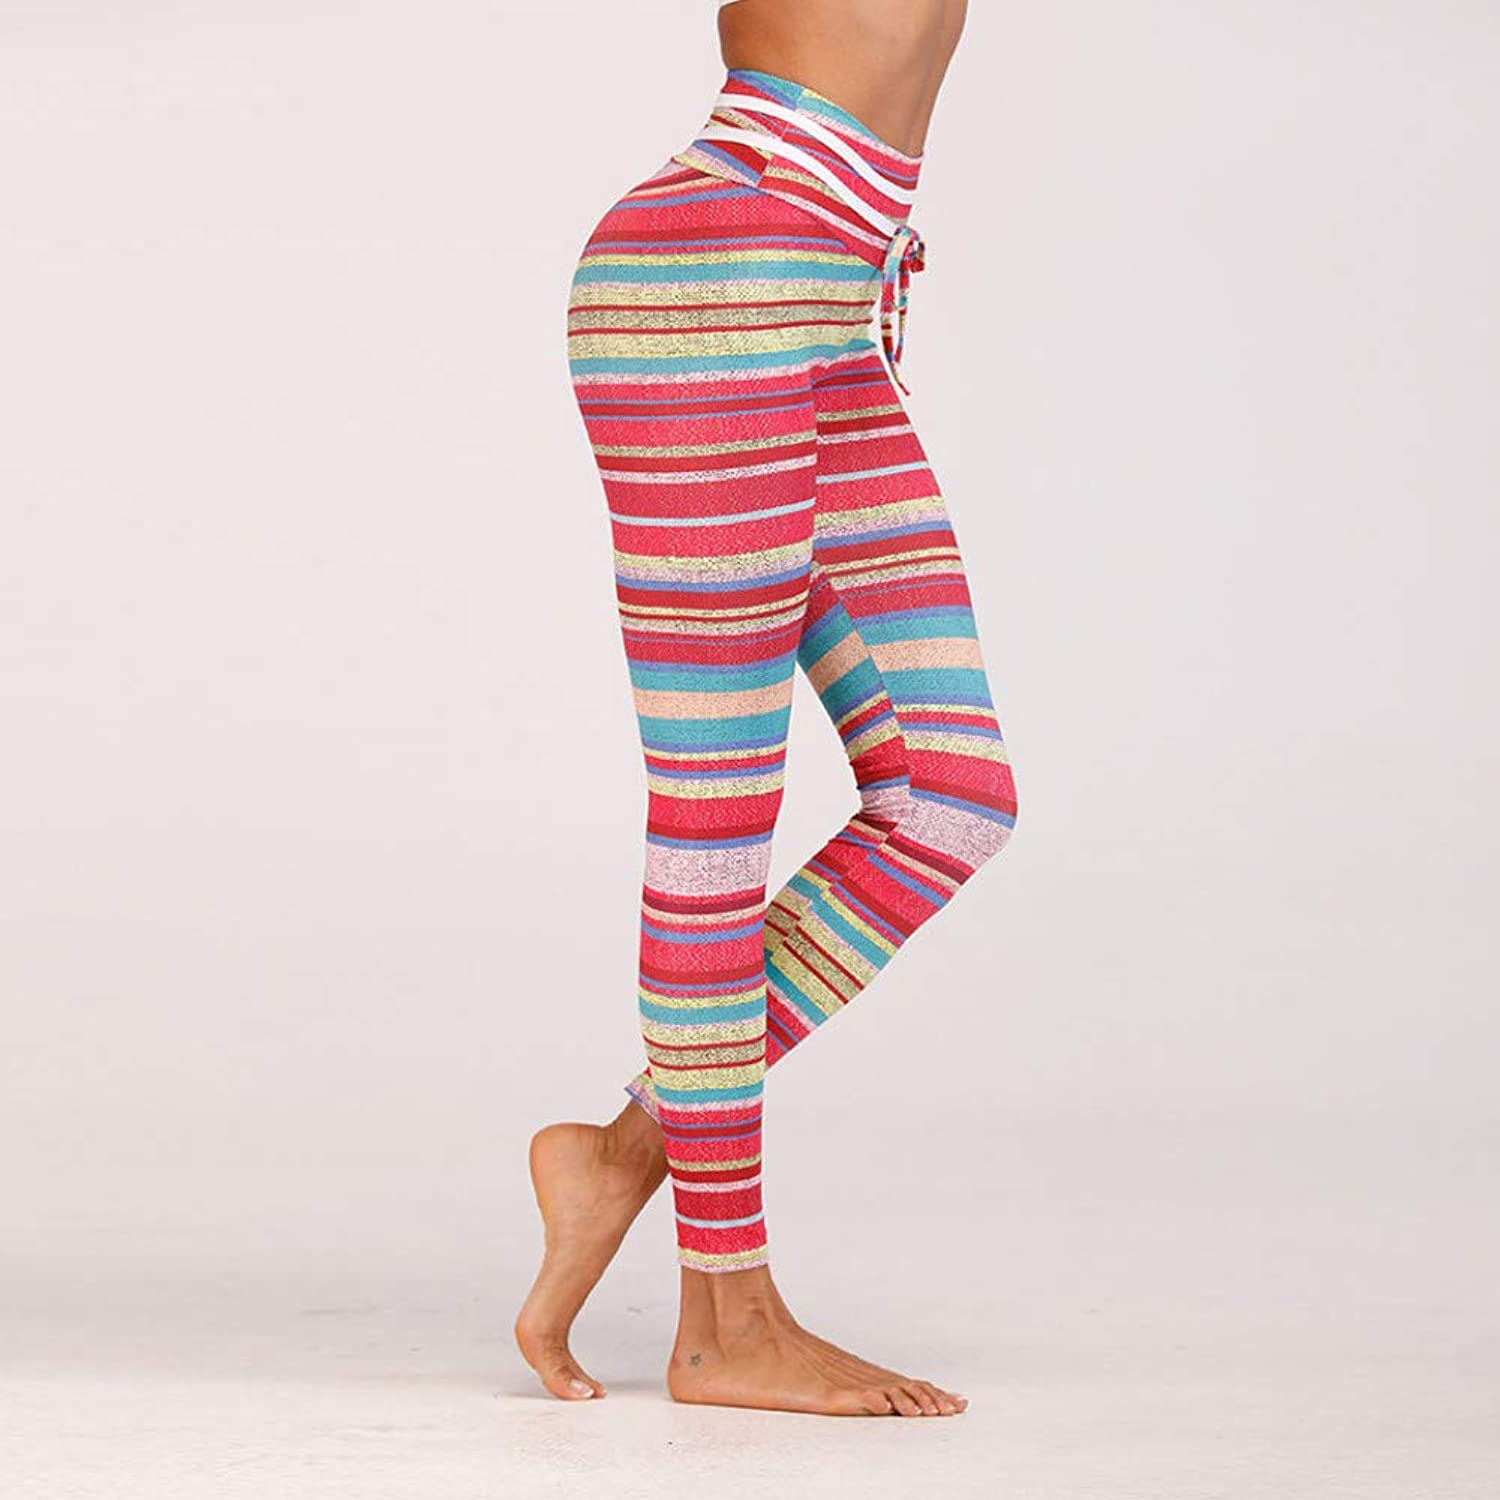 WZXY colorful Stripe Printed Yoga Leggings for Women Sport Pants High Waist Workout Tights Thick Fabric Gym Fitness Gymwear